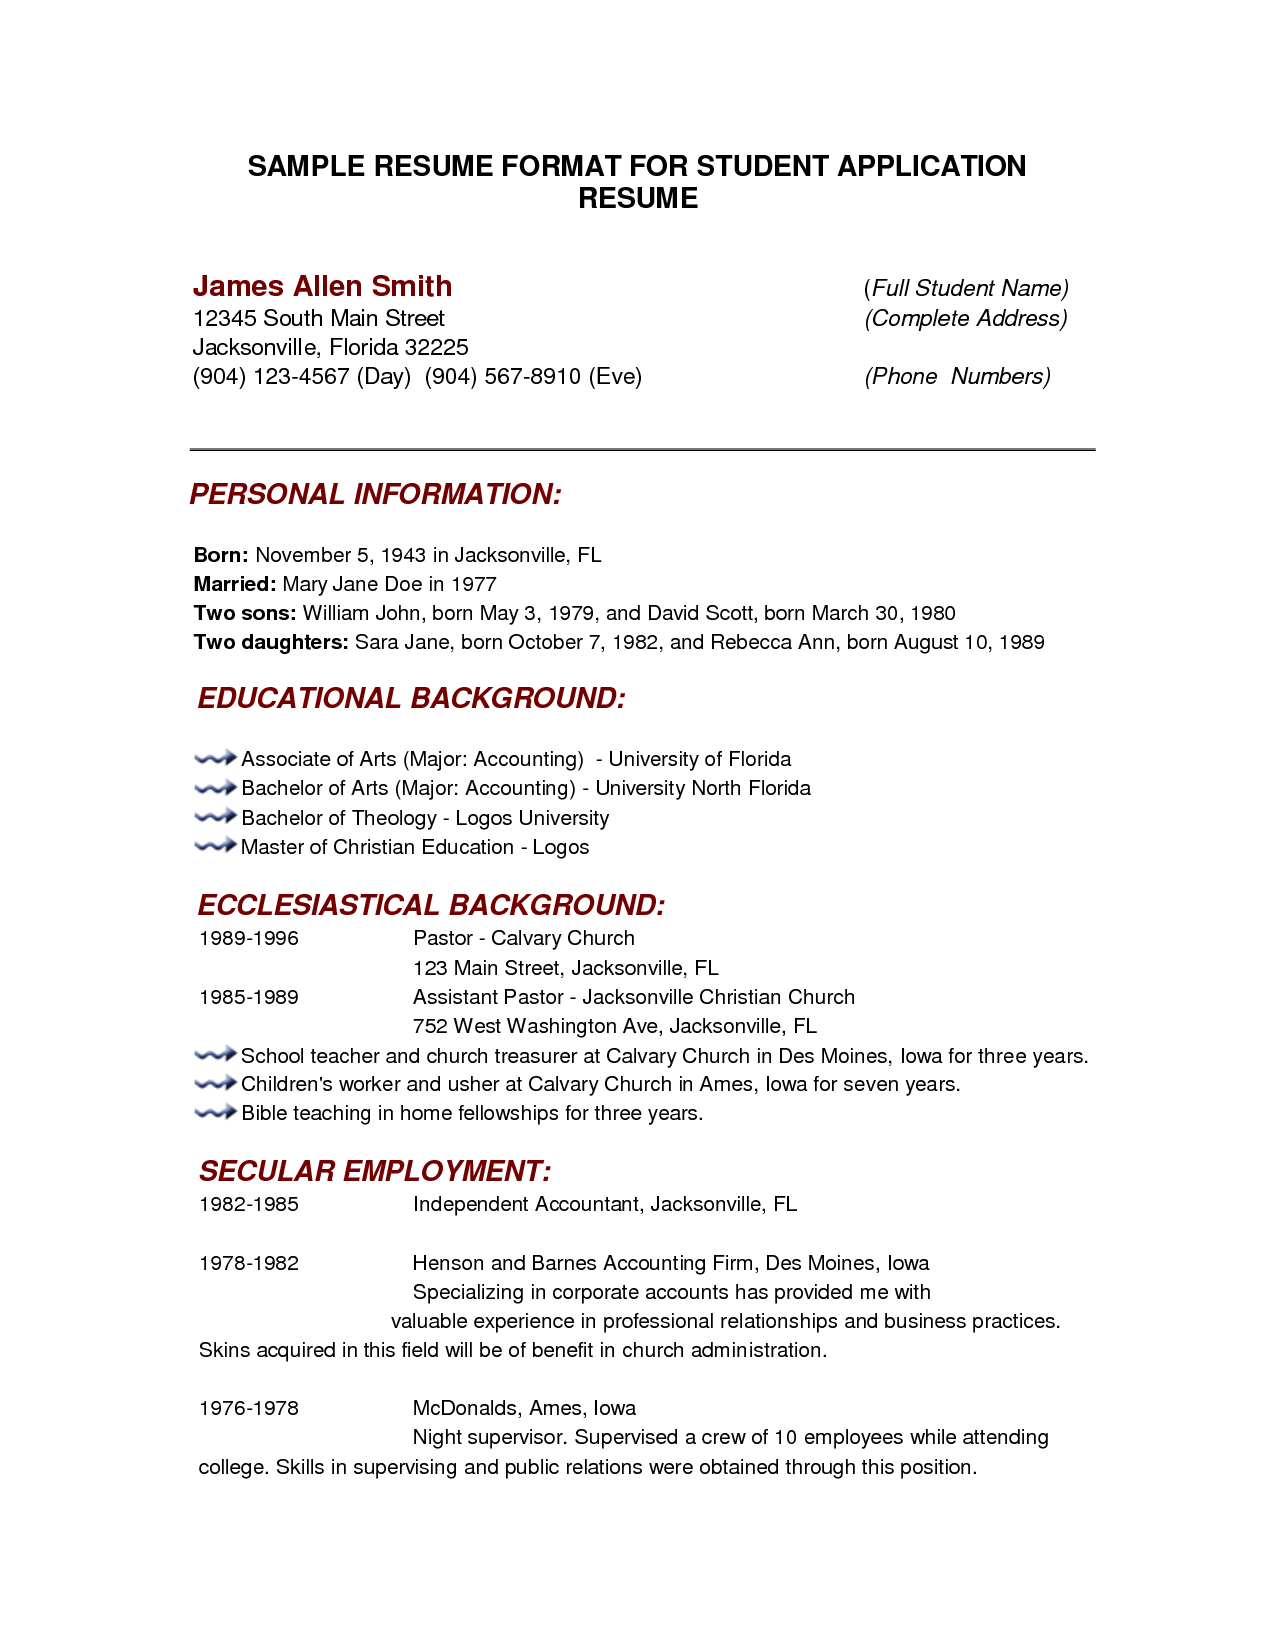 Resume Format Examples High School Senior Resume For College Application  Google Search